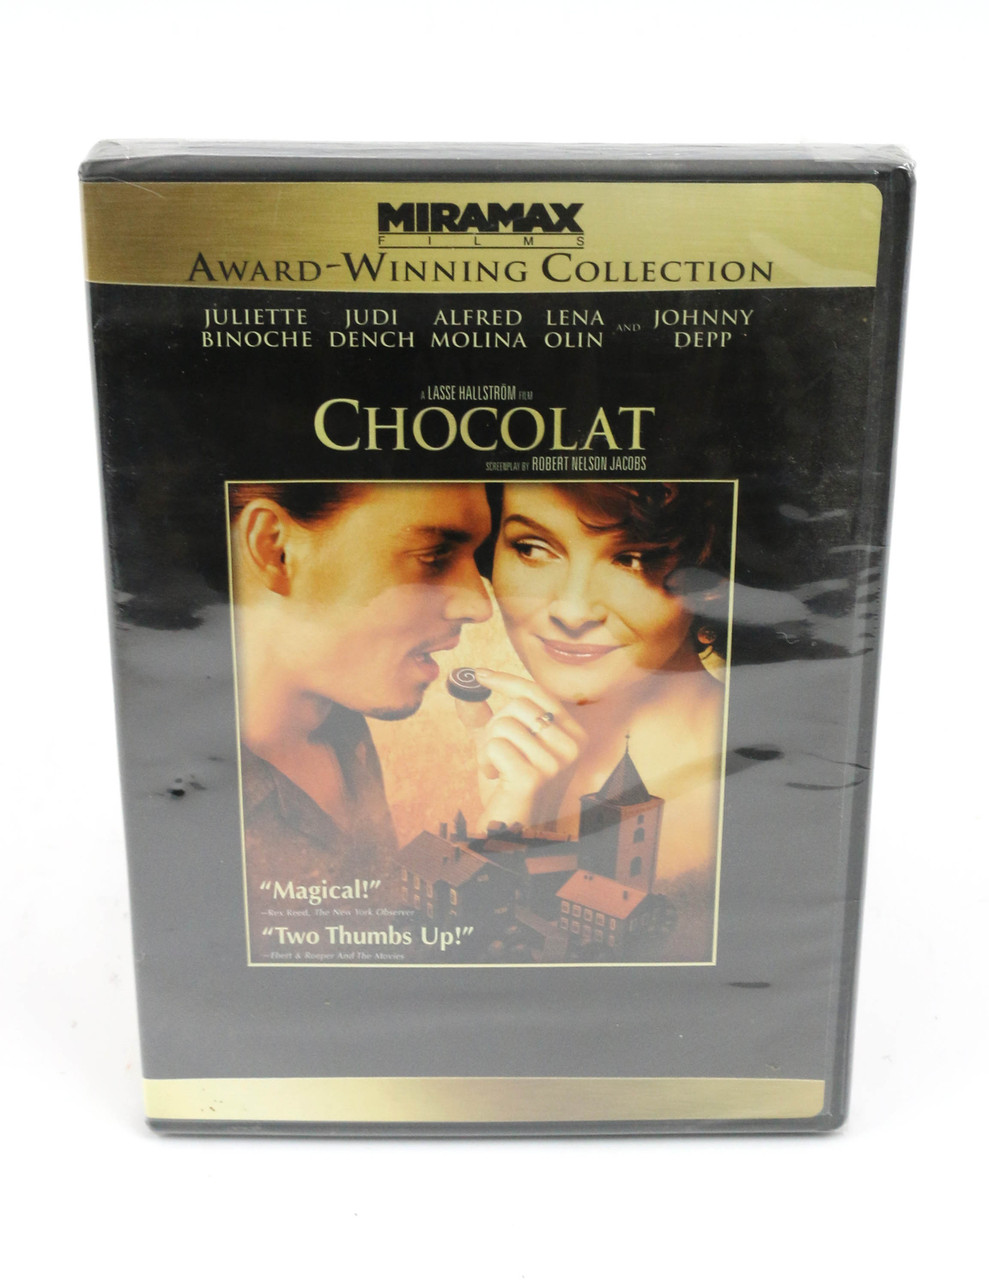 http://store-n1387.mybigcommerce.com/content/DVD-CHOCOLAT9.JPG